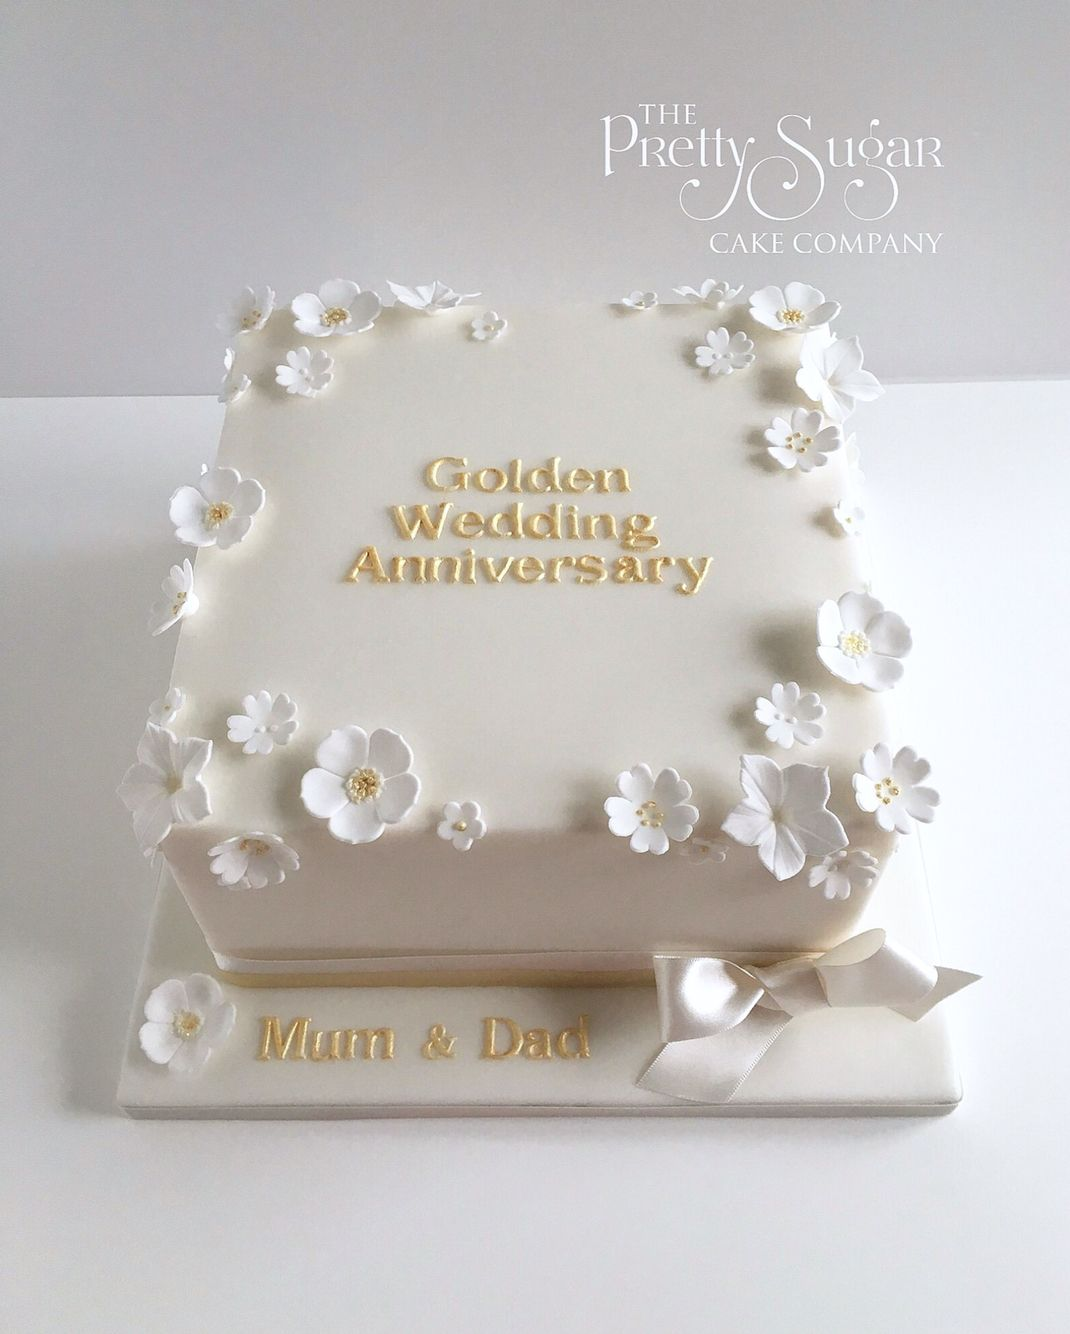 Golden wedding anniversary cake with white and gold blossoms ...